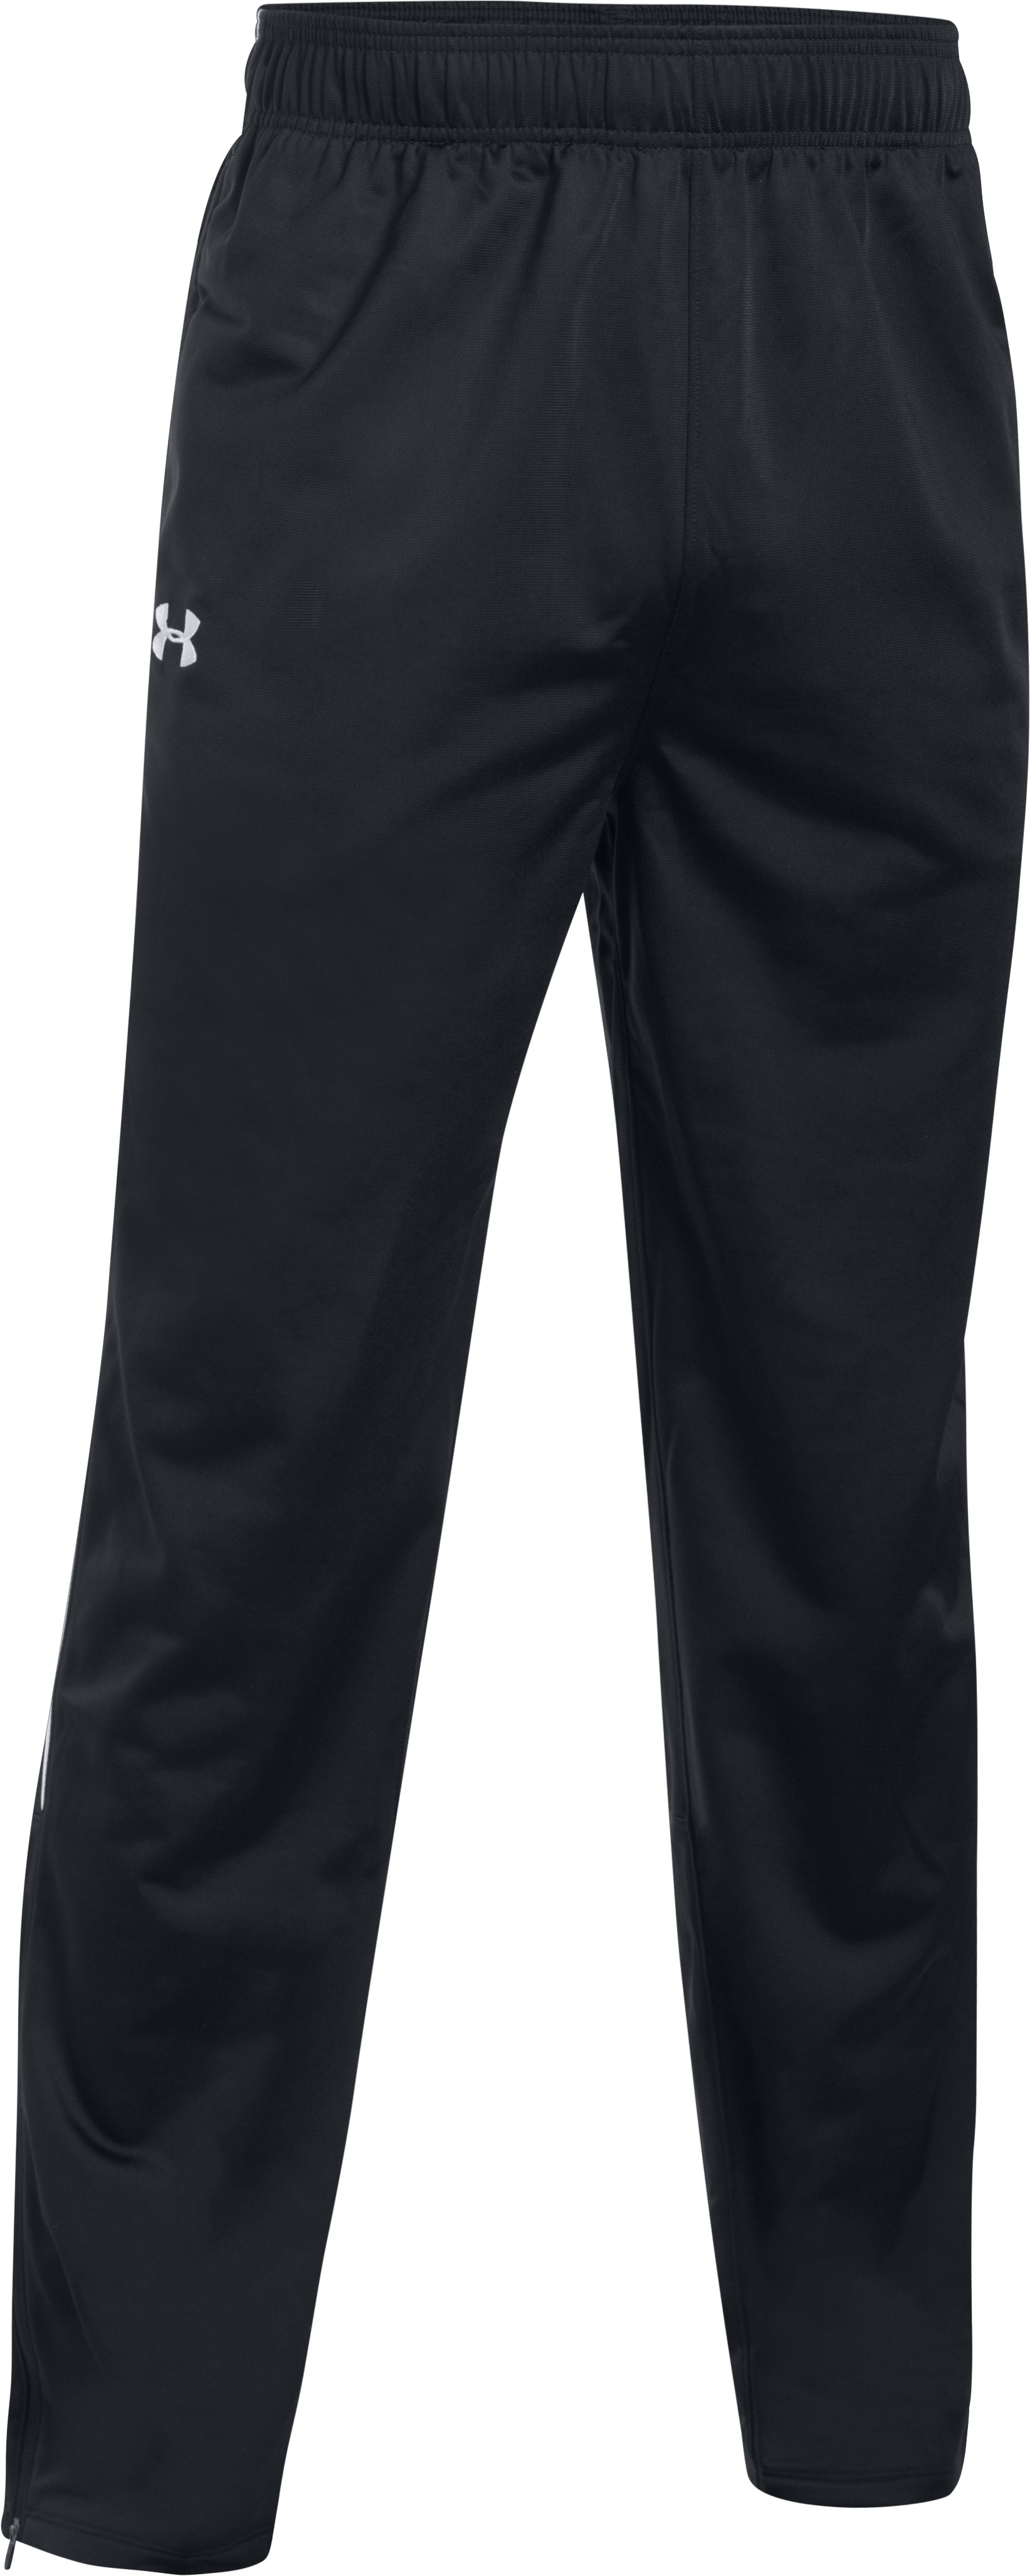 Men's UA Rival Knit Warm-Up Pants, Black , undefined